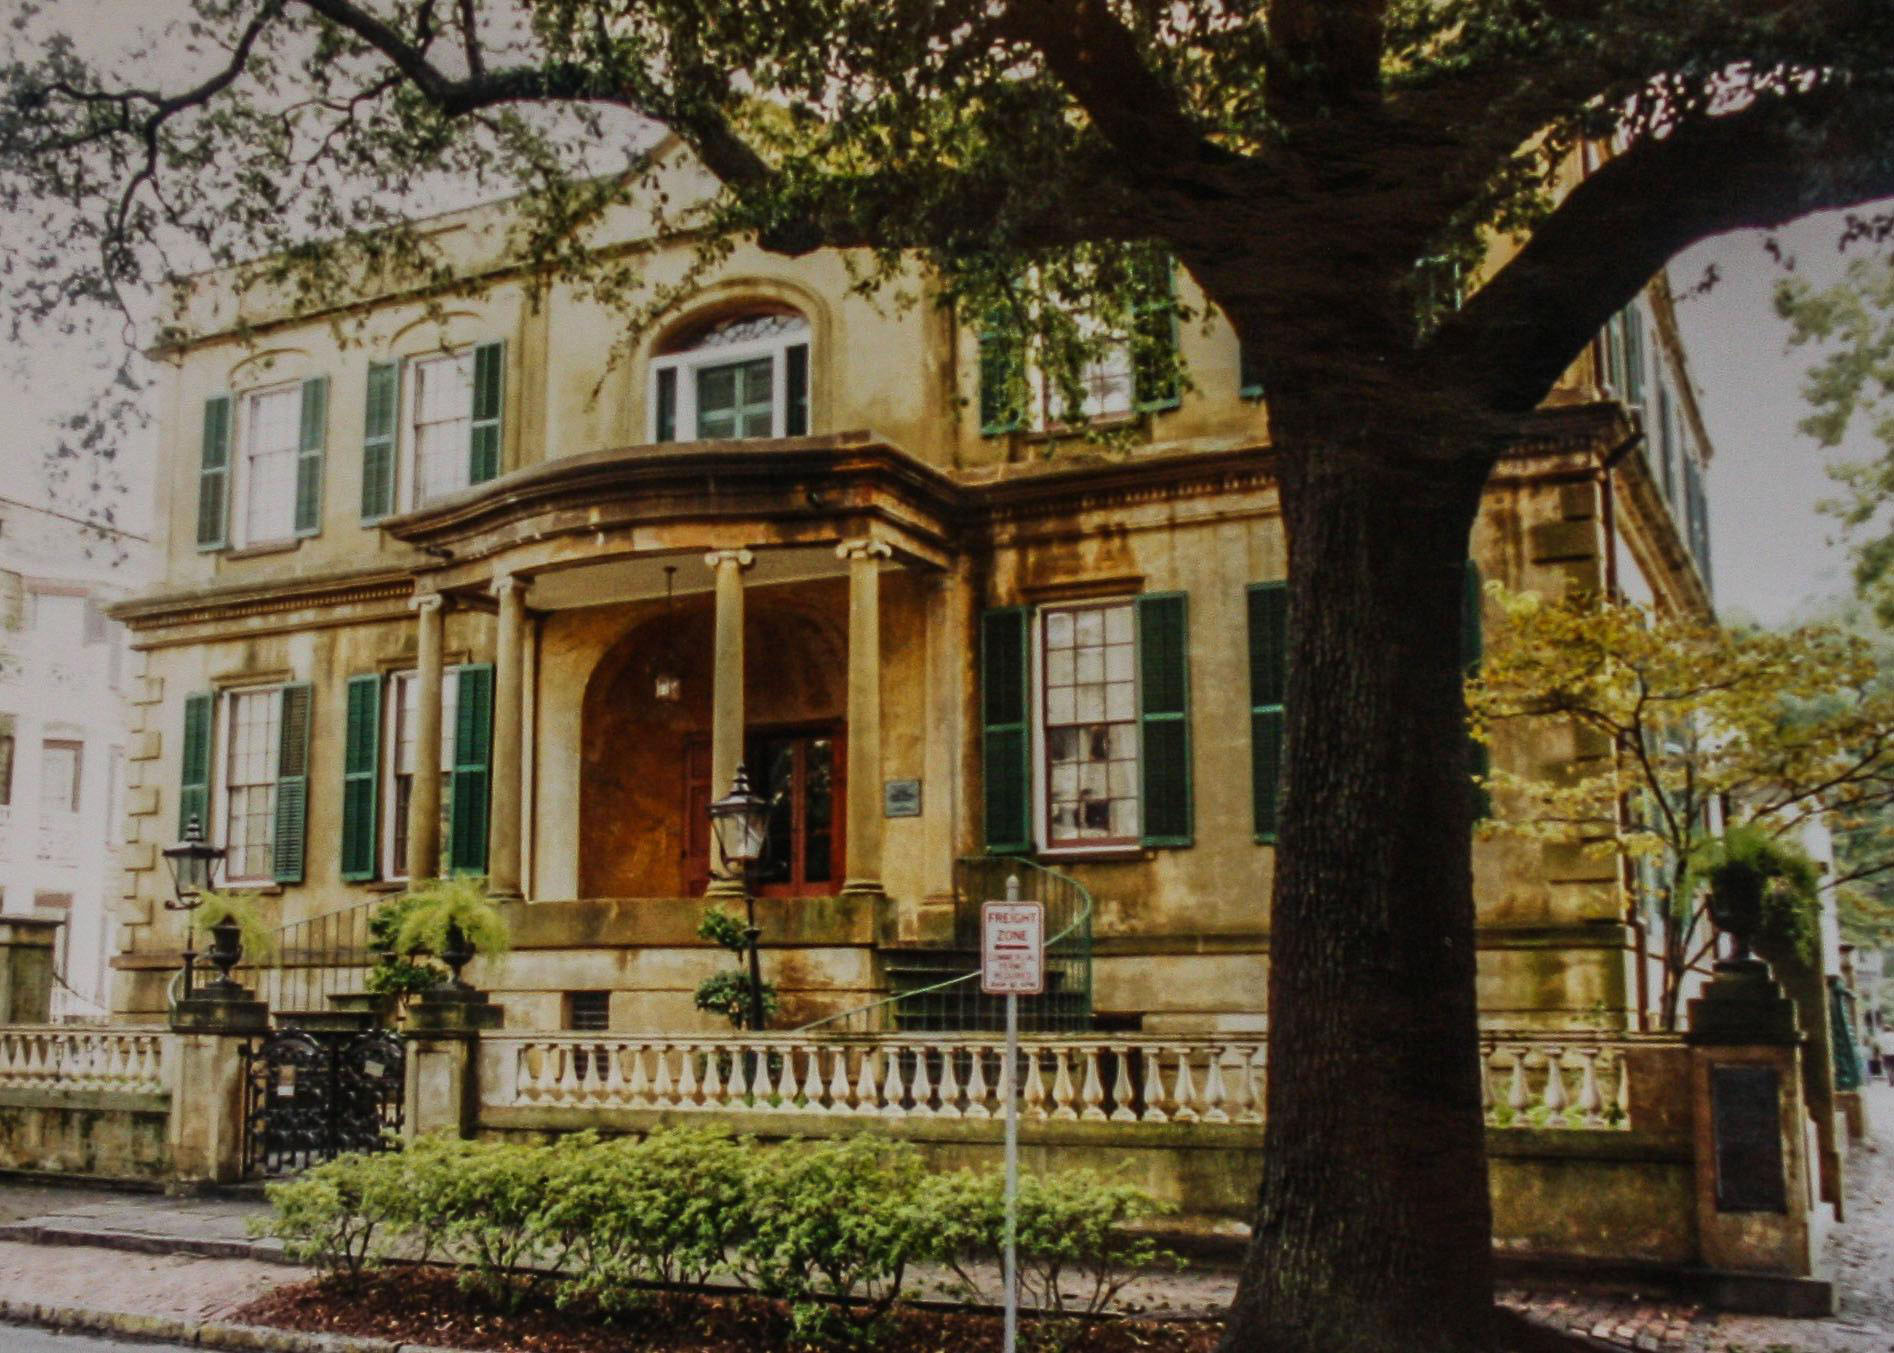 Top 5 u s historic districts stephen travels for Historic houses in savannah ga